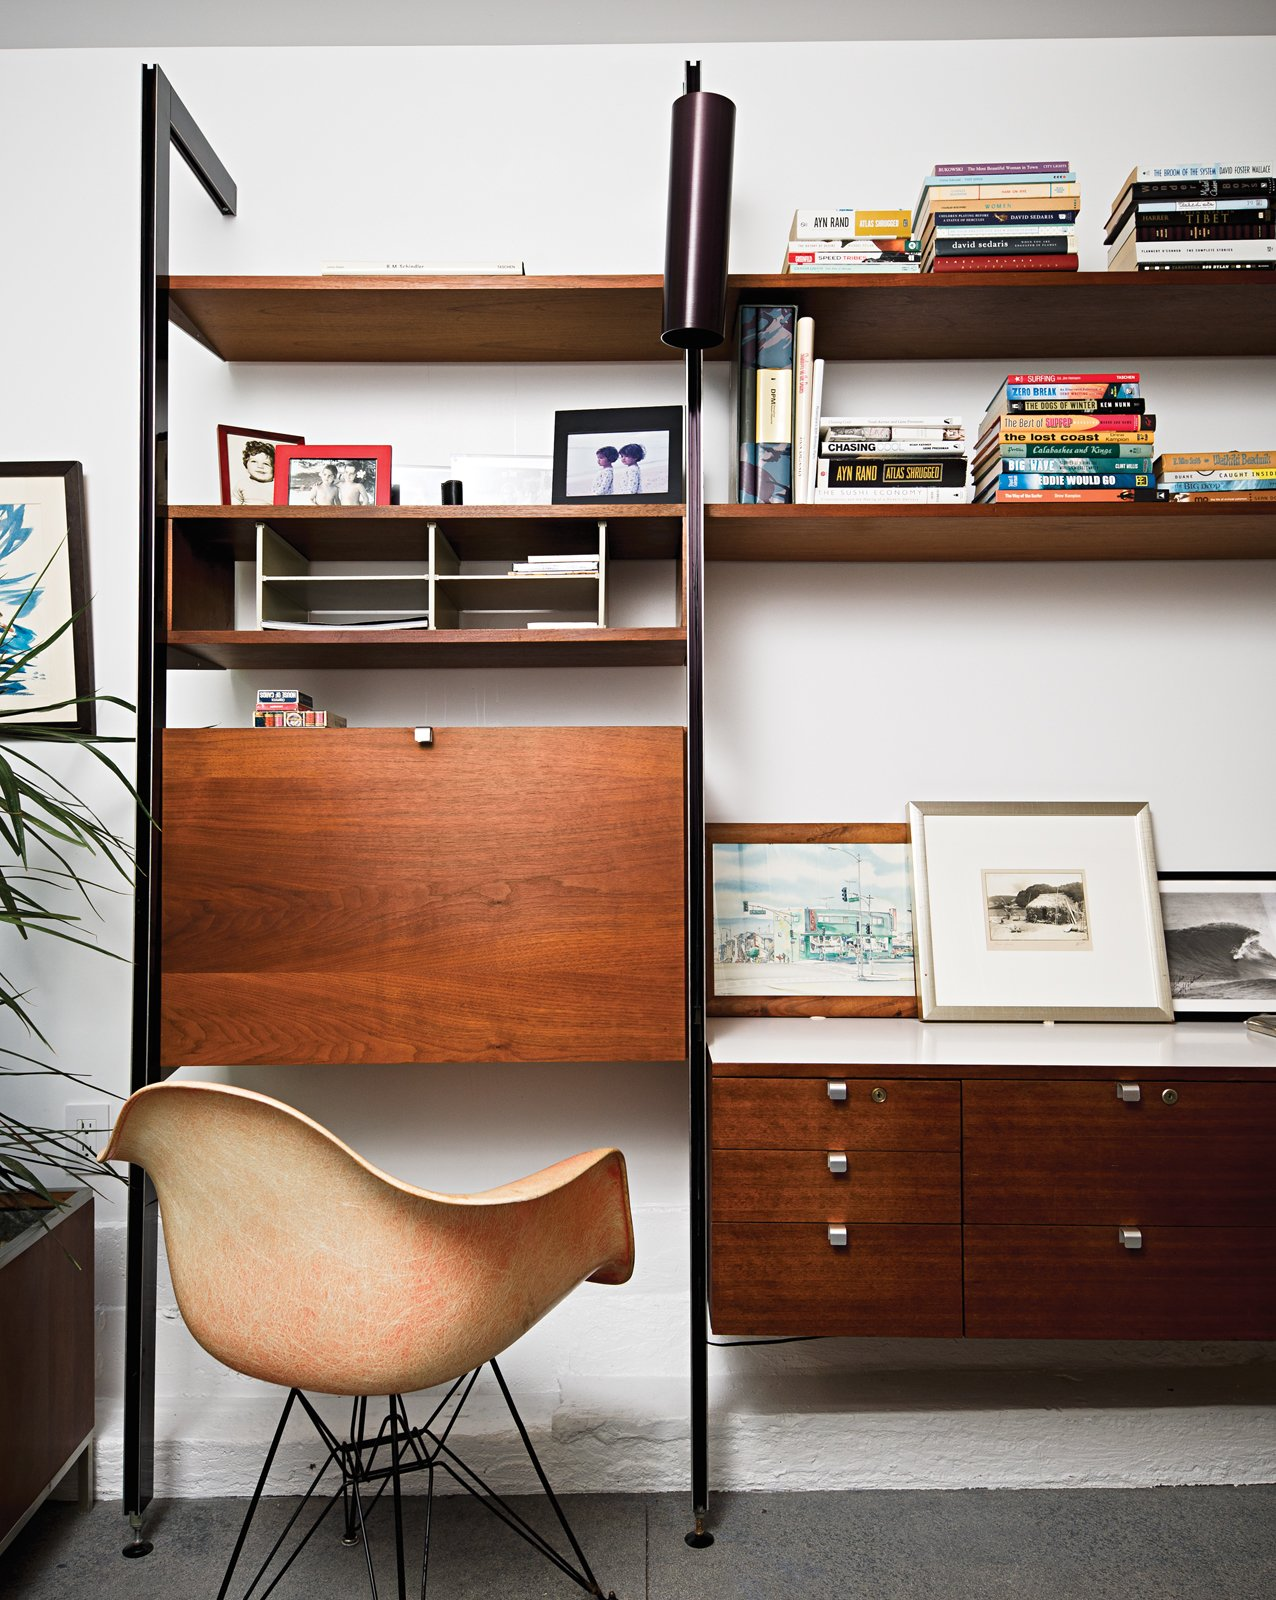 An original Eames shell chair manufactured in Gardena, California, before production moved to Michigan.